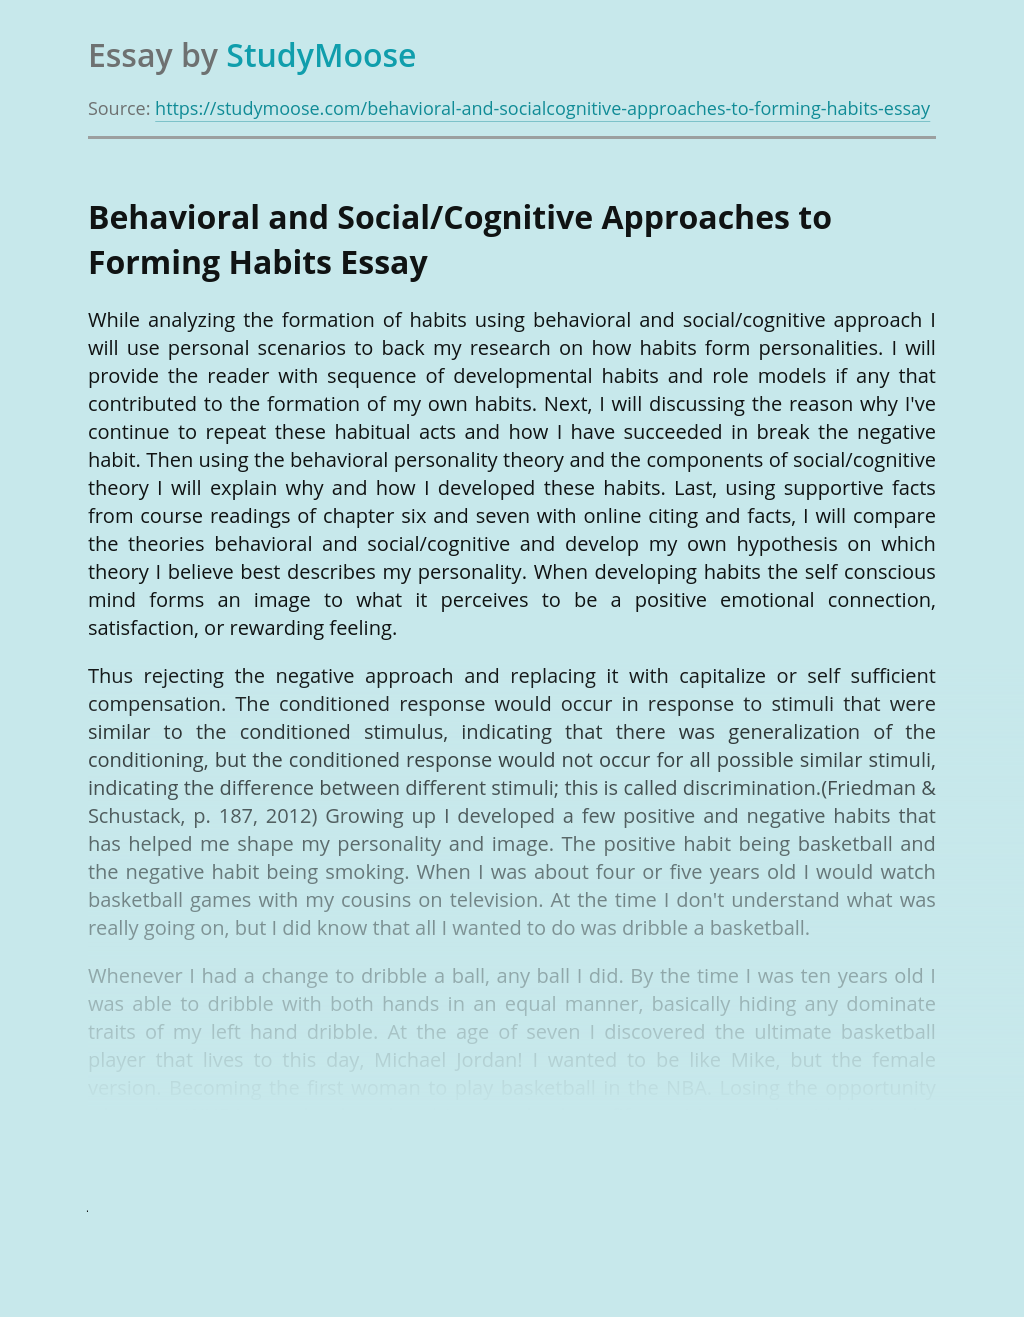 Behavioral and Social/Cognitive Approaches to Forming Habits